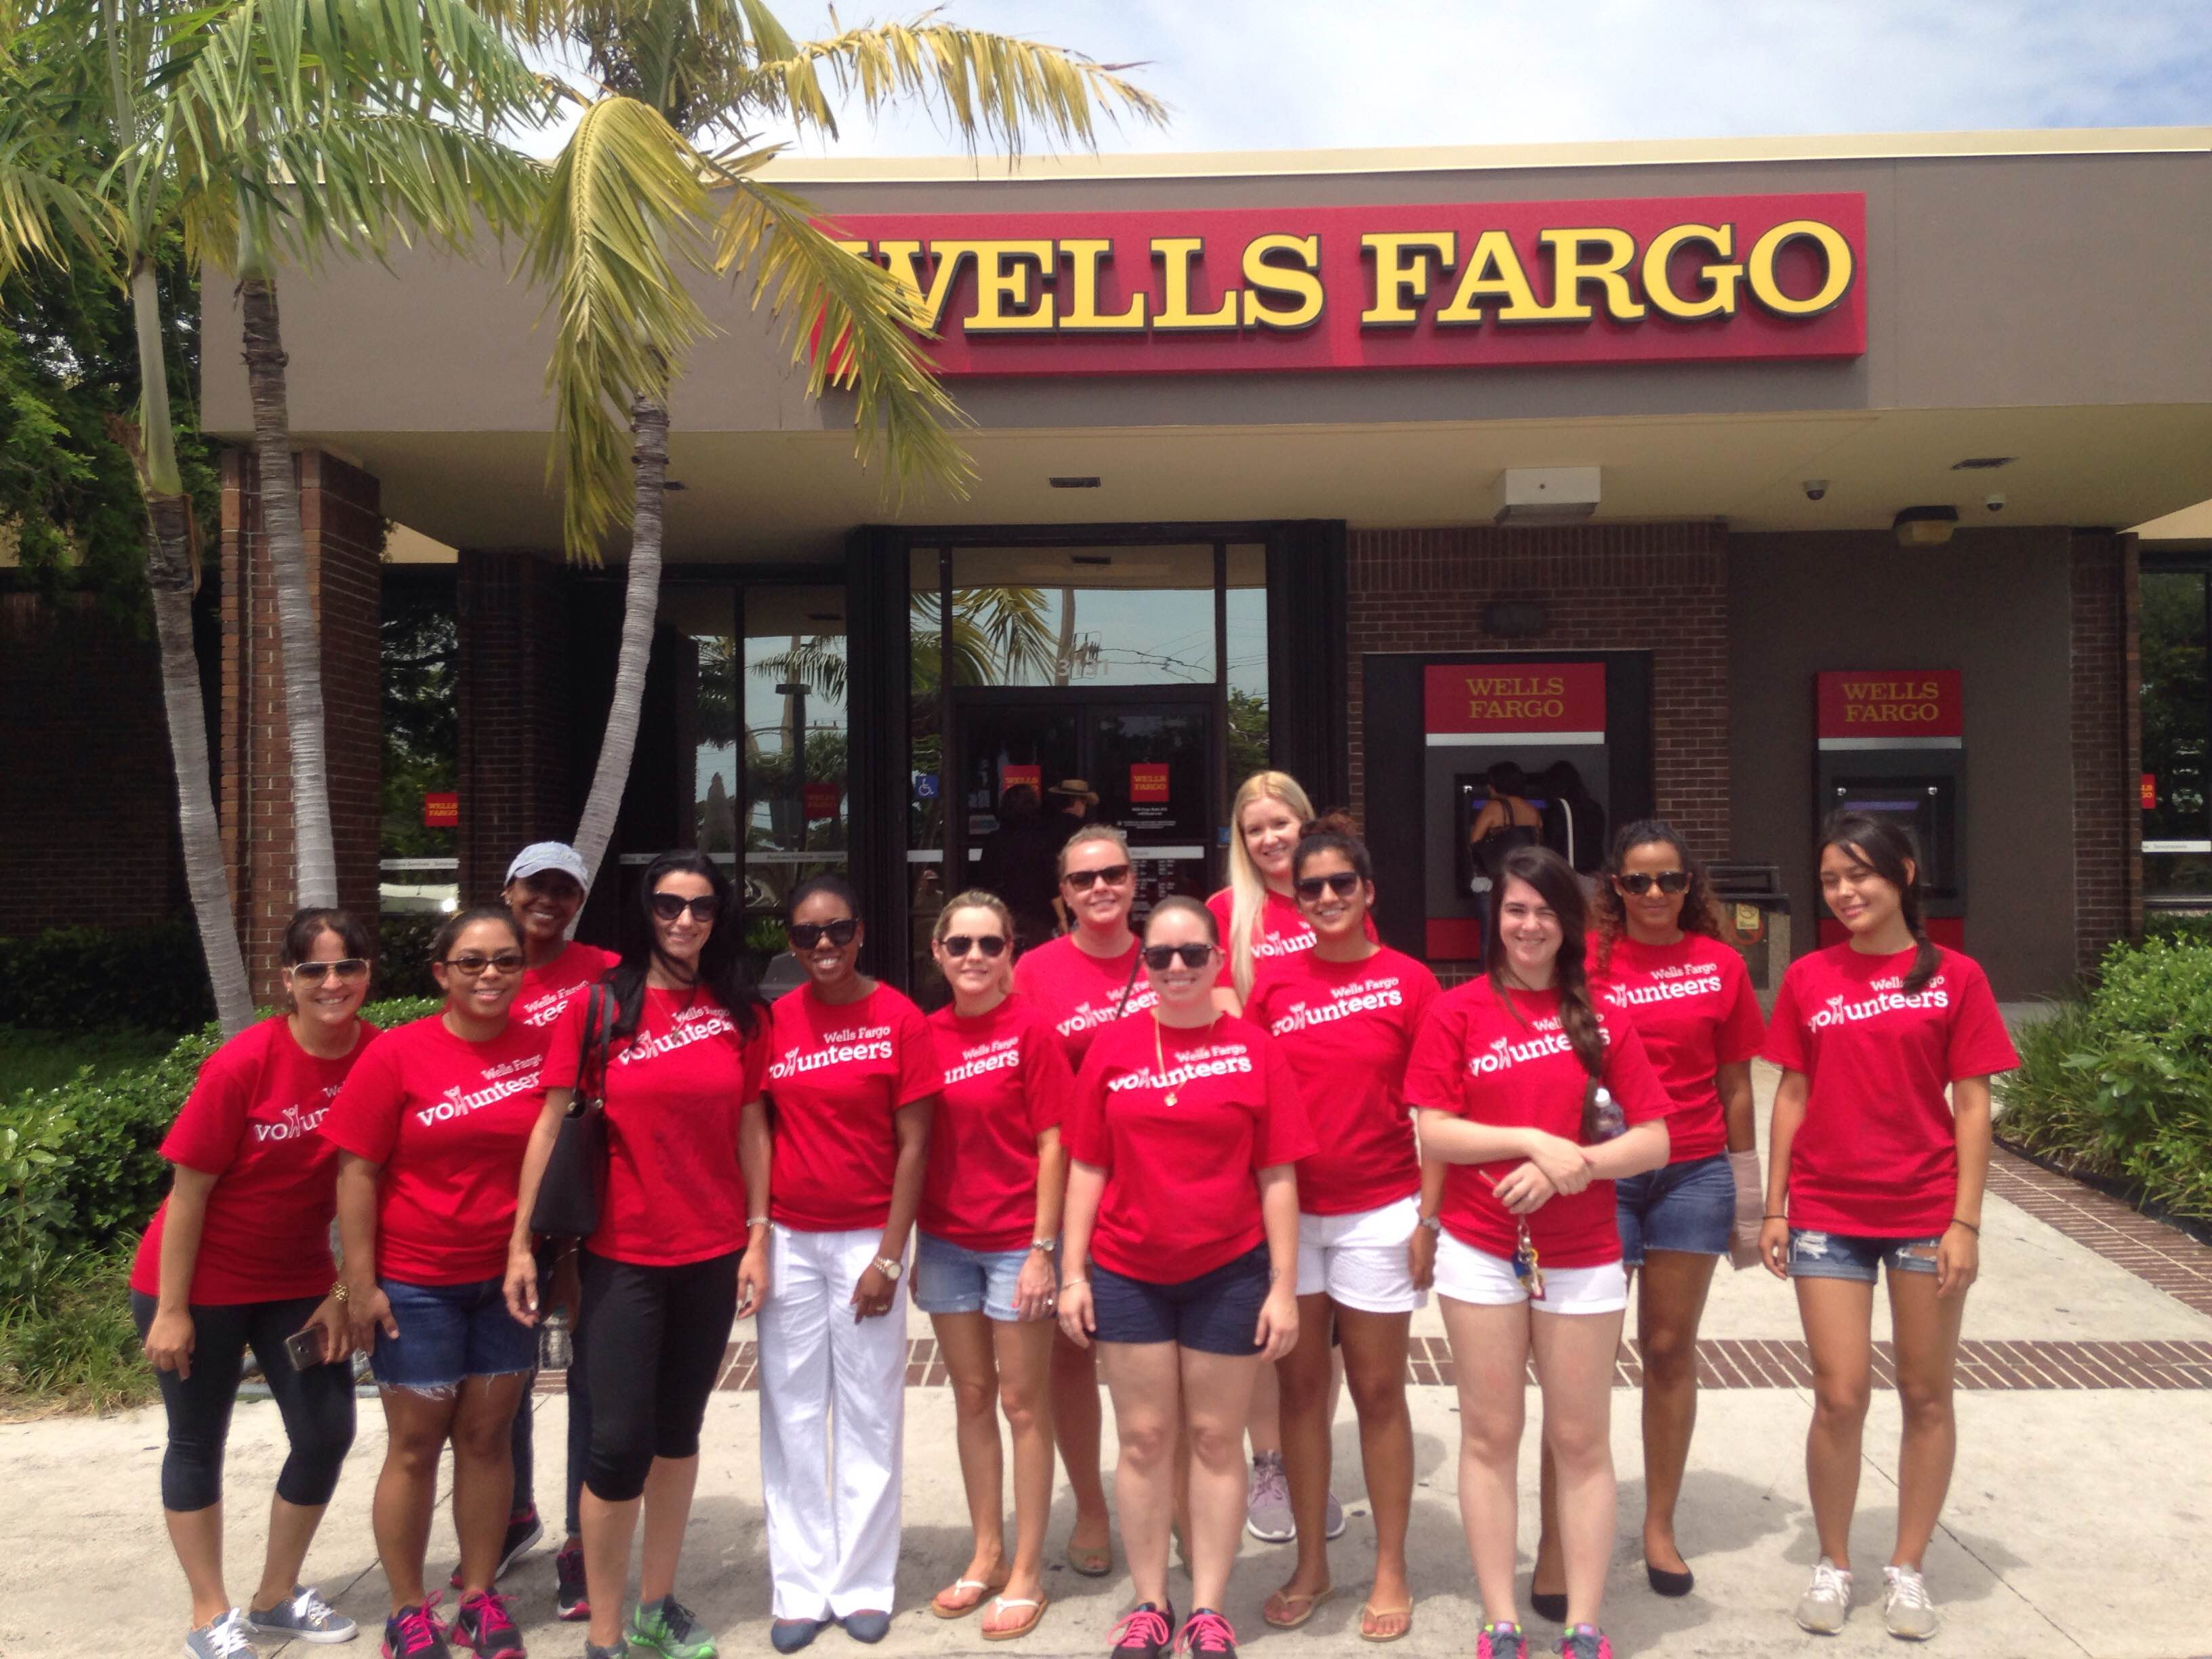 Thank you to the Wells Fargo volunteers!